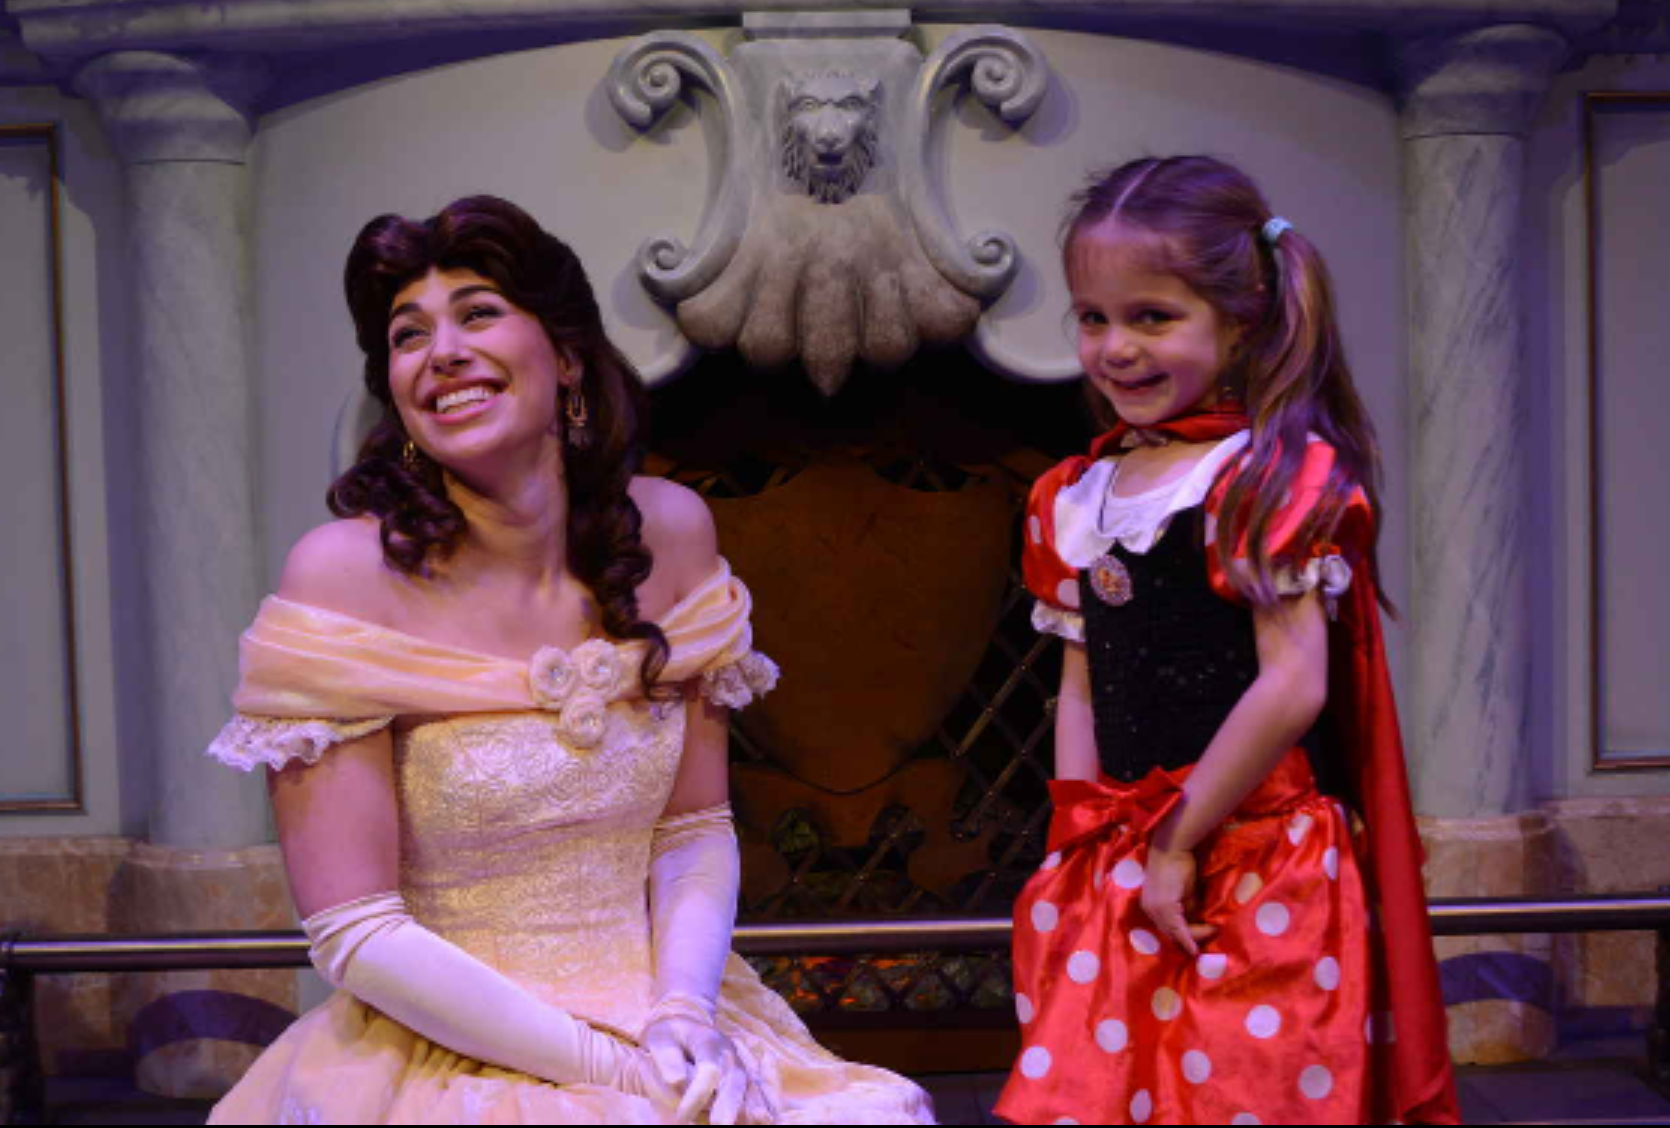 Belle meets 'SUPER PRINCESS HULA HOOP MAN'